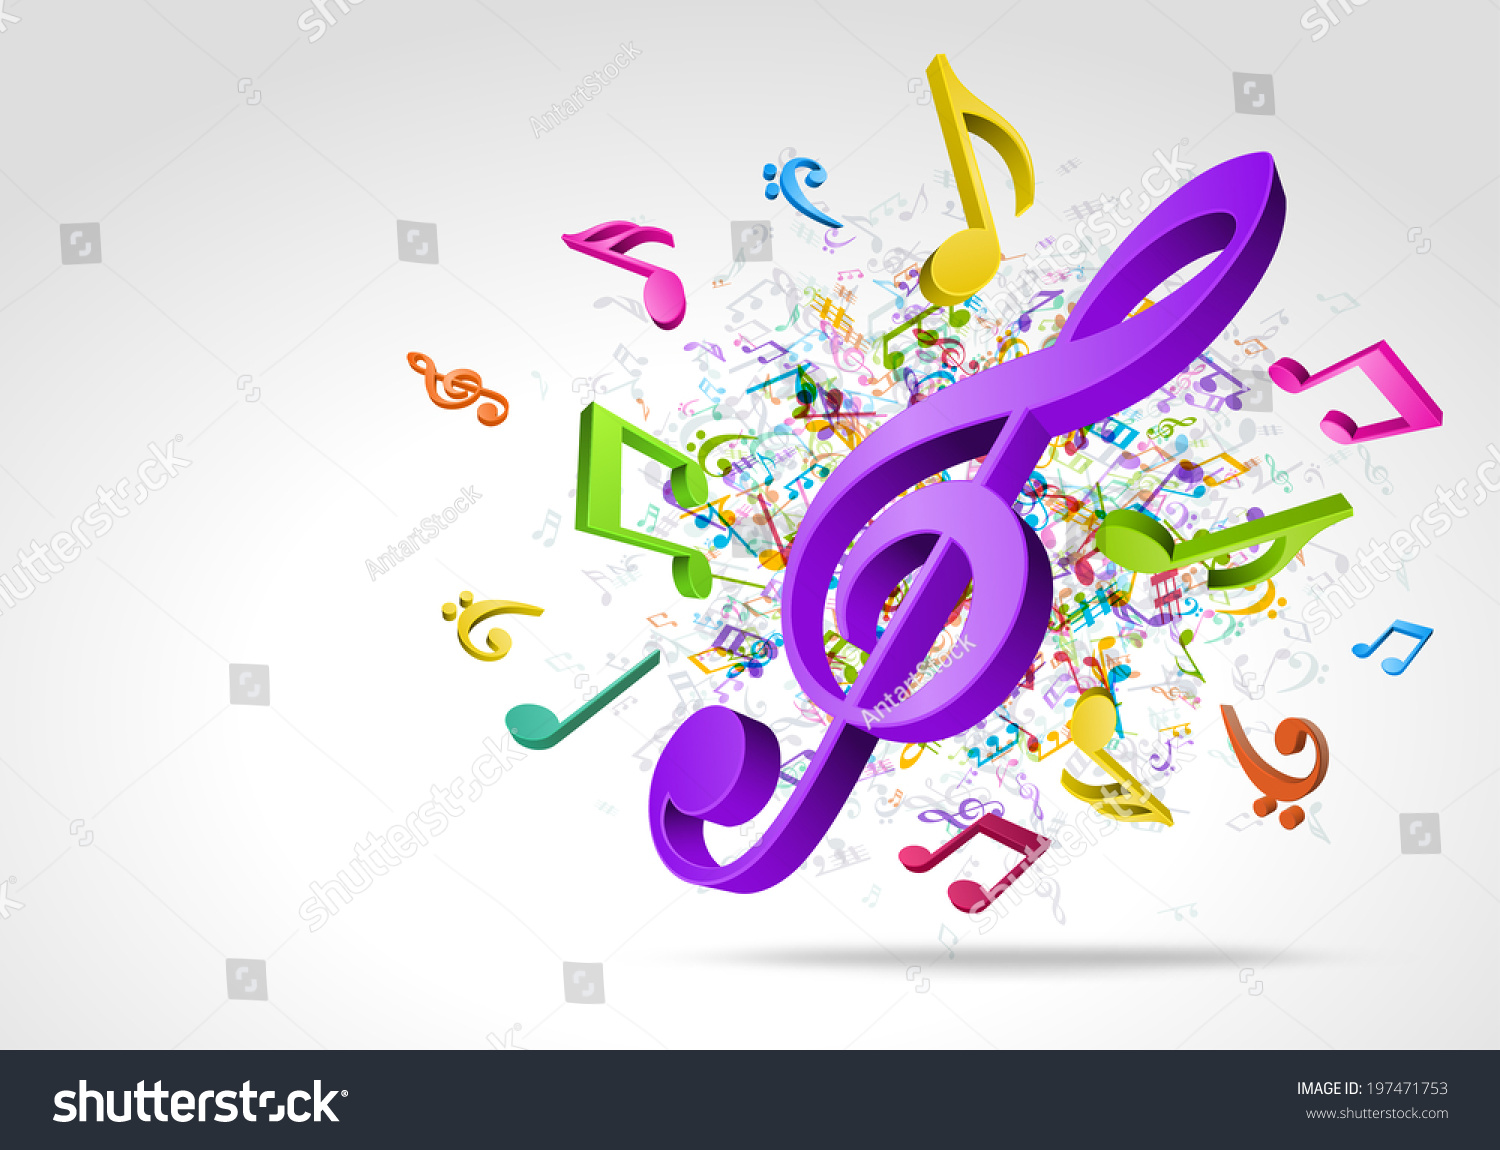 3d Colorful Music Notes Wallpaper: Colorful 3d Music Notes Vector Background Stock Vector